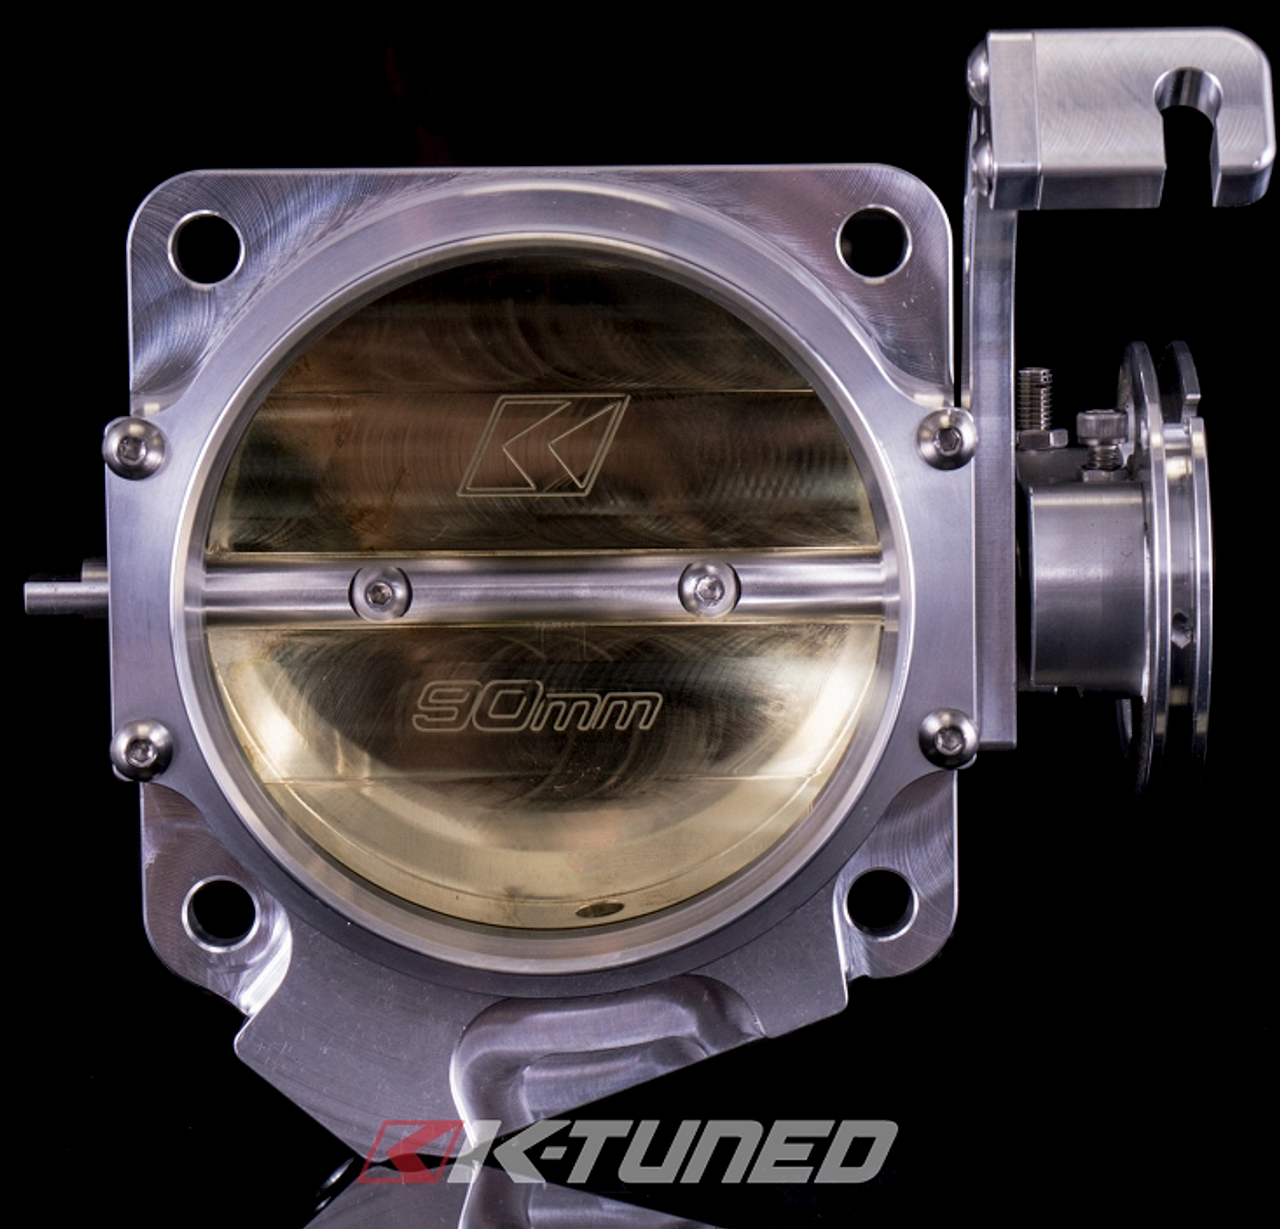 80mm Throttle Body w/ K-Series IACV and Map ports - K-Series TPS